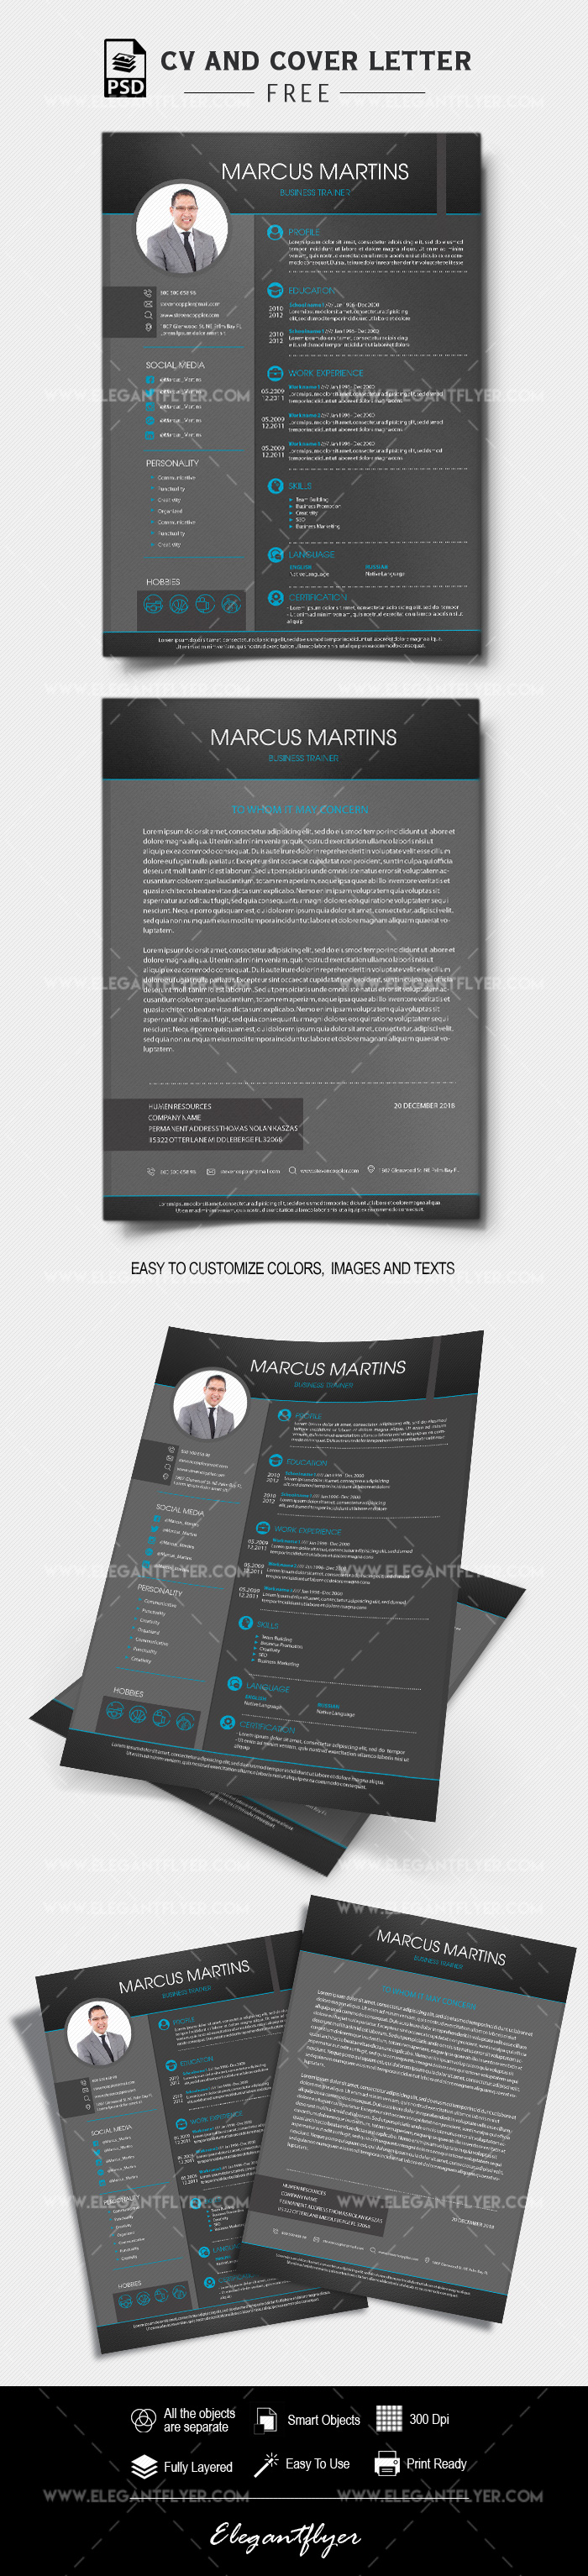 Business CV and Cover Letter PSD Template